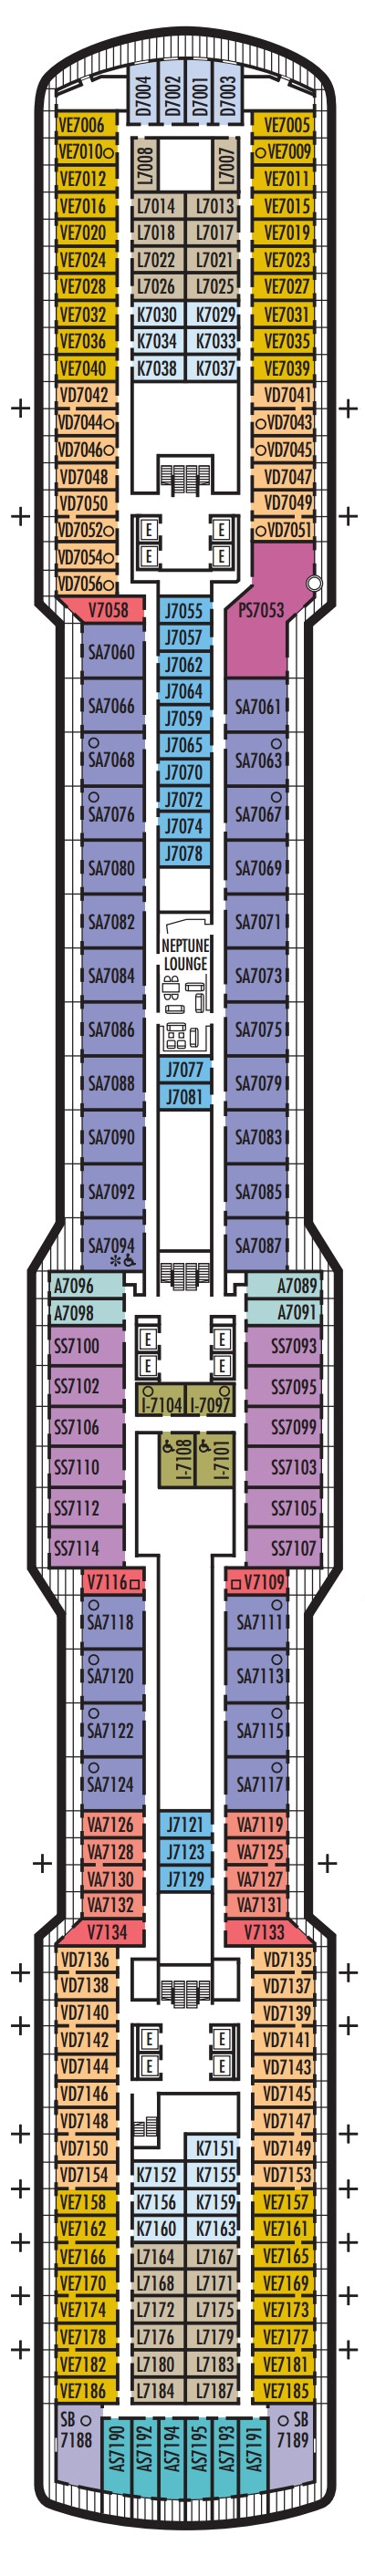 Koningsdam Schubert Deck layout